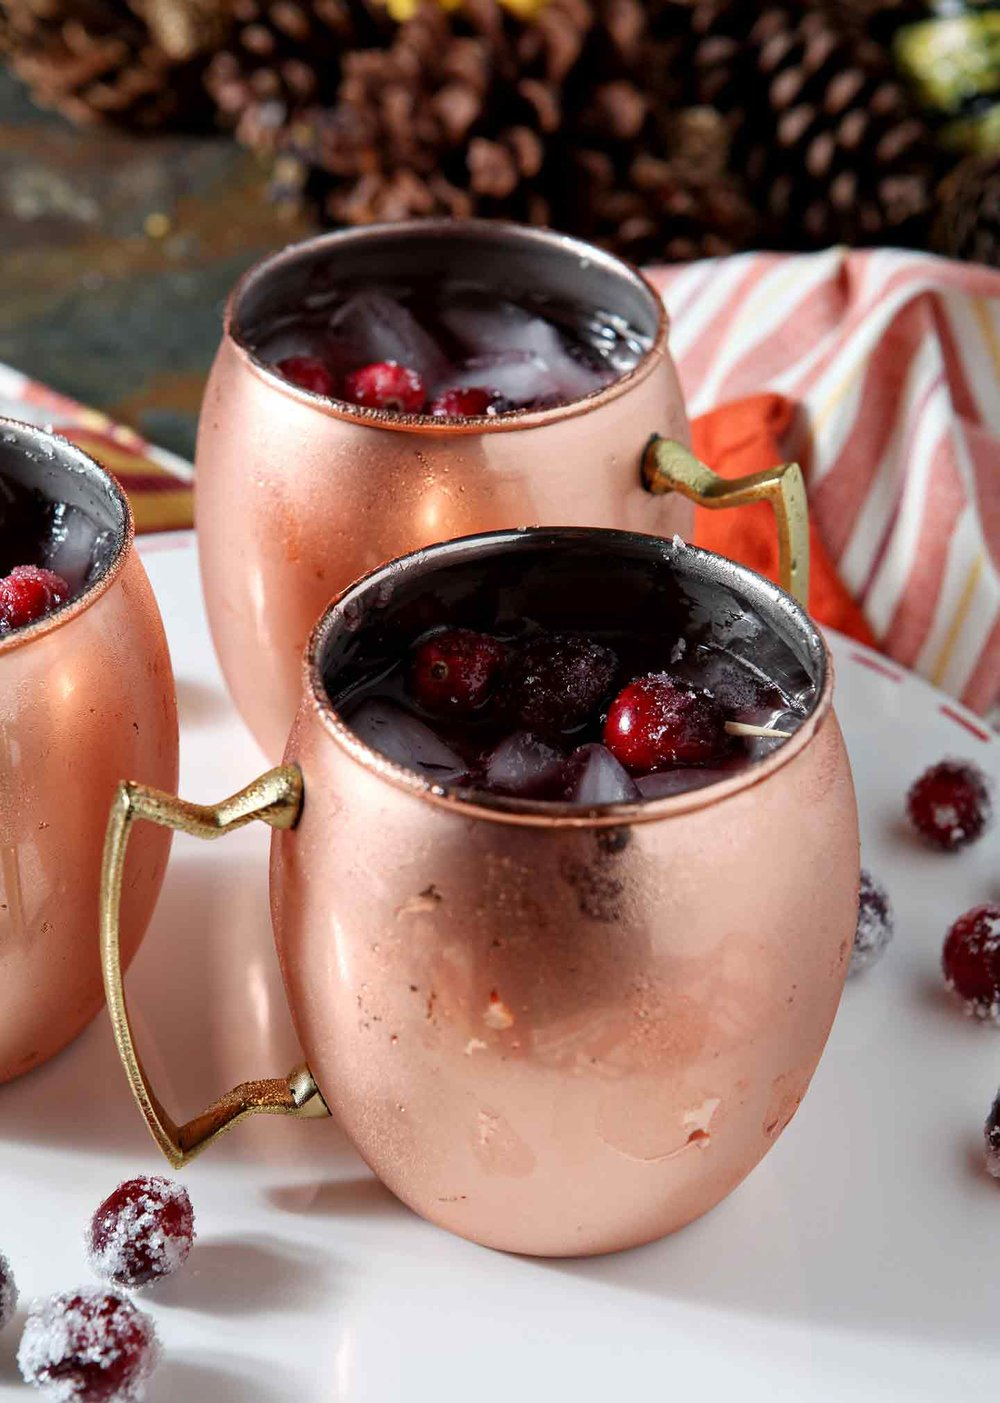 TheSpeckledPalate_Blogsgiving2015_CranberryMule_003_small.jpg